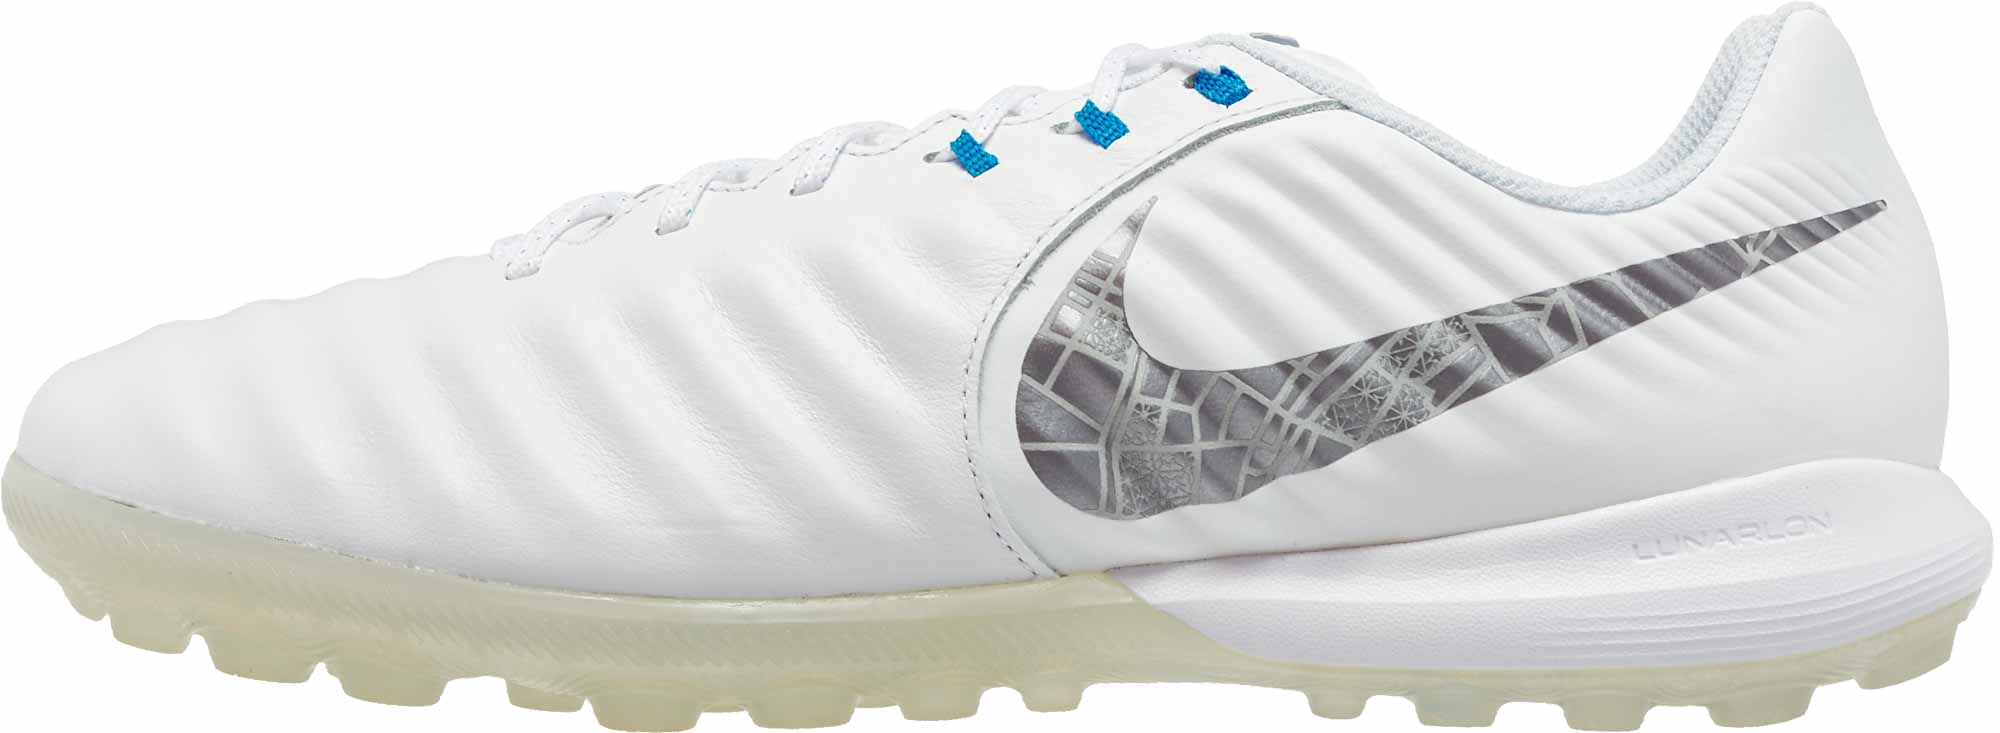 release date 4df6c 4c67a Nike Tiempo LegendX 7 Pro TF - White/Metallic Cool Grey/Blue ...